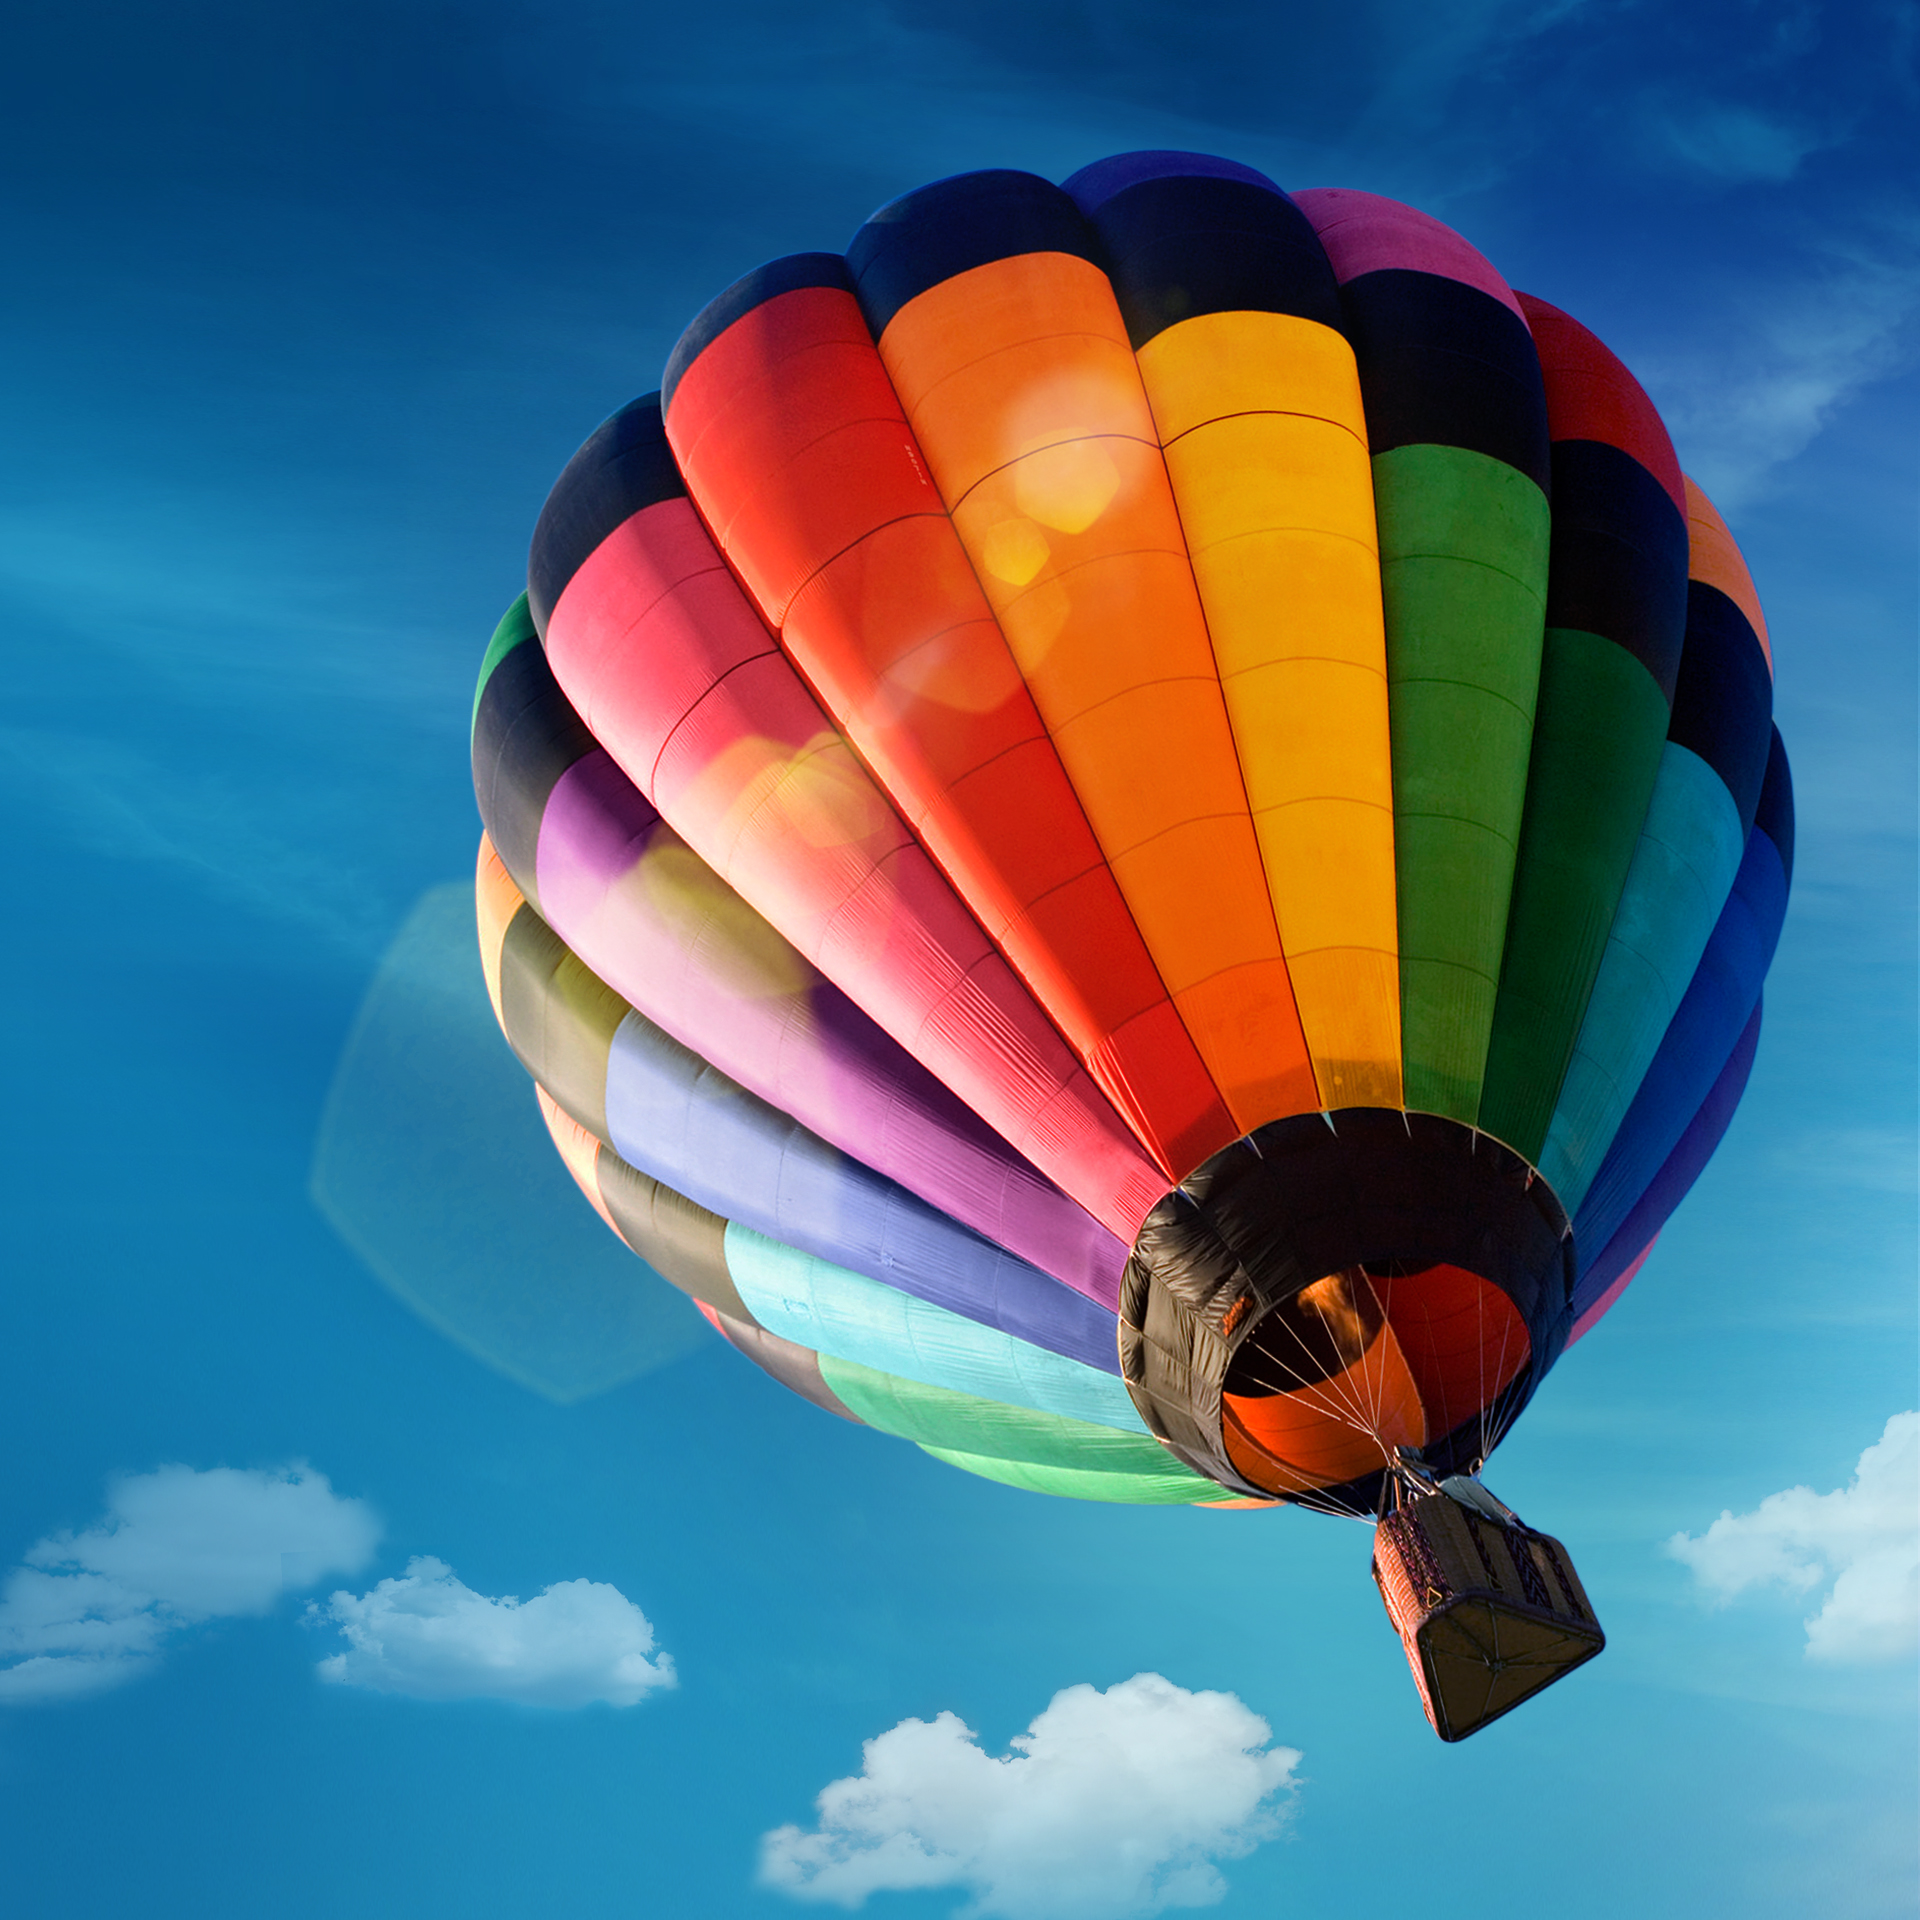 samsung galaxy s4 hot air balloon android wallpaper download your screen size 1024 x 1024 recommended download original